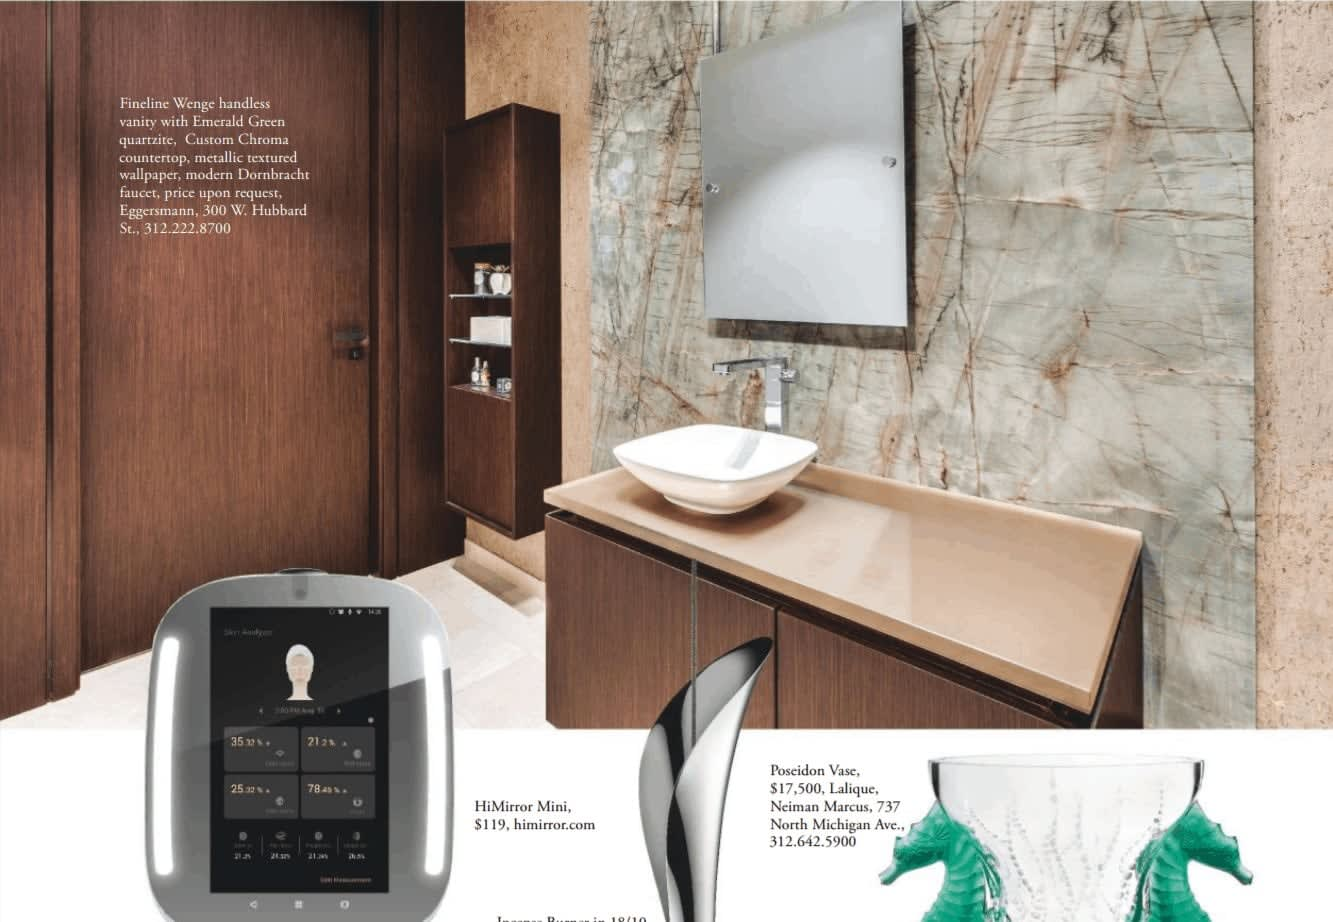 eggersmann's elegant luxury bath with floating mirror featured in sophisticated living magazine